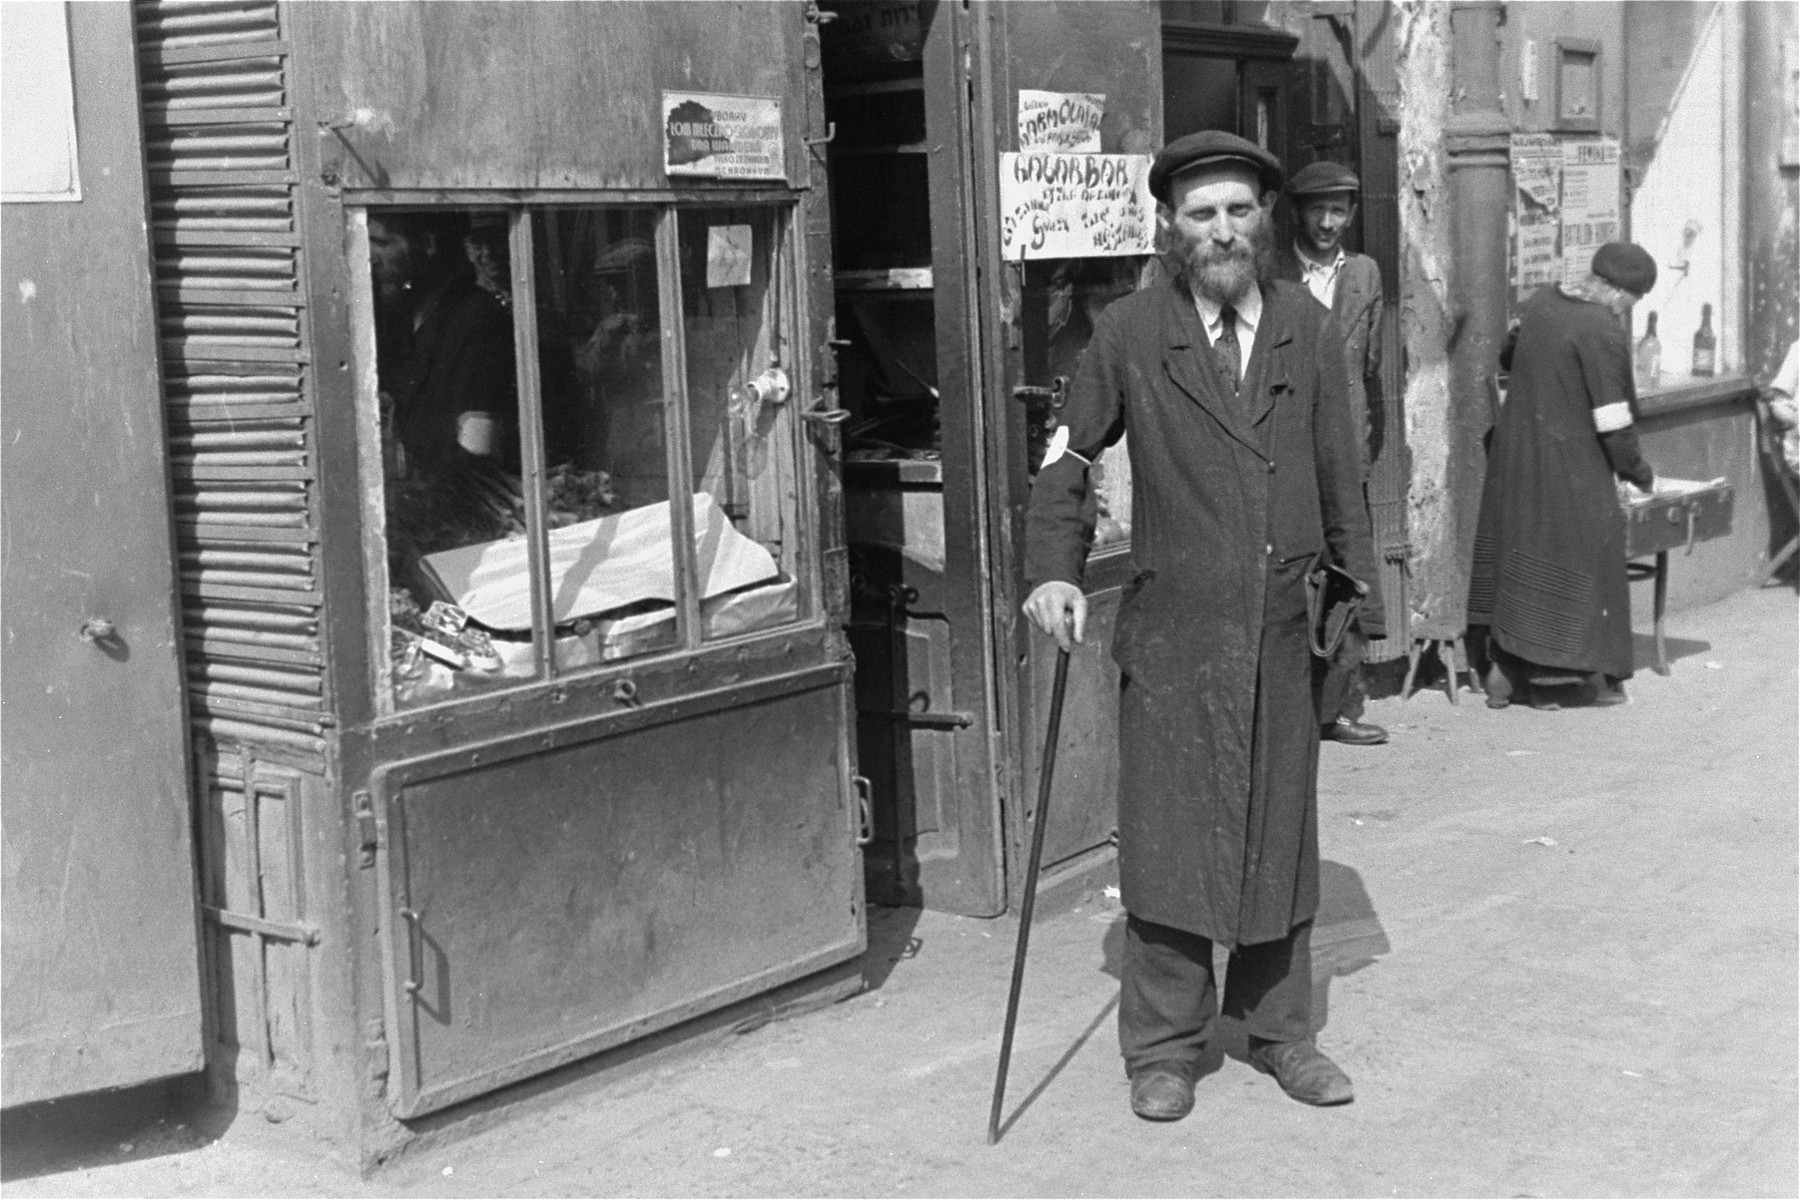 An Jewish man walks along a street in the Warsaw ghetto with a cane.